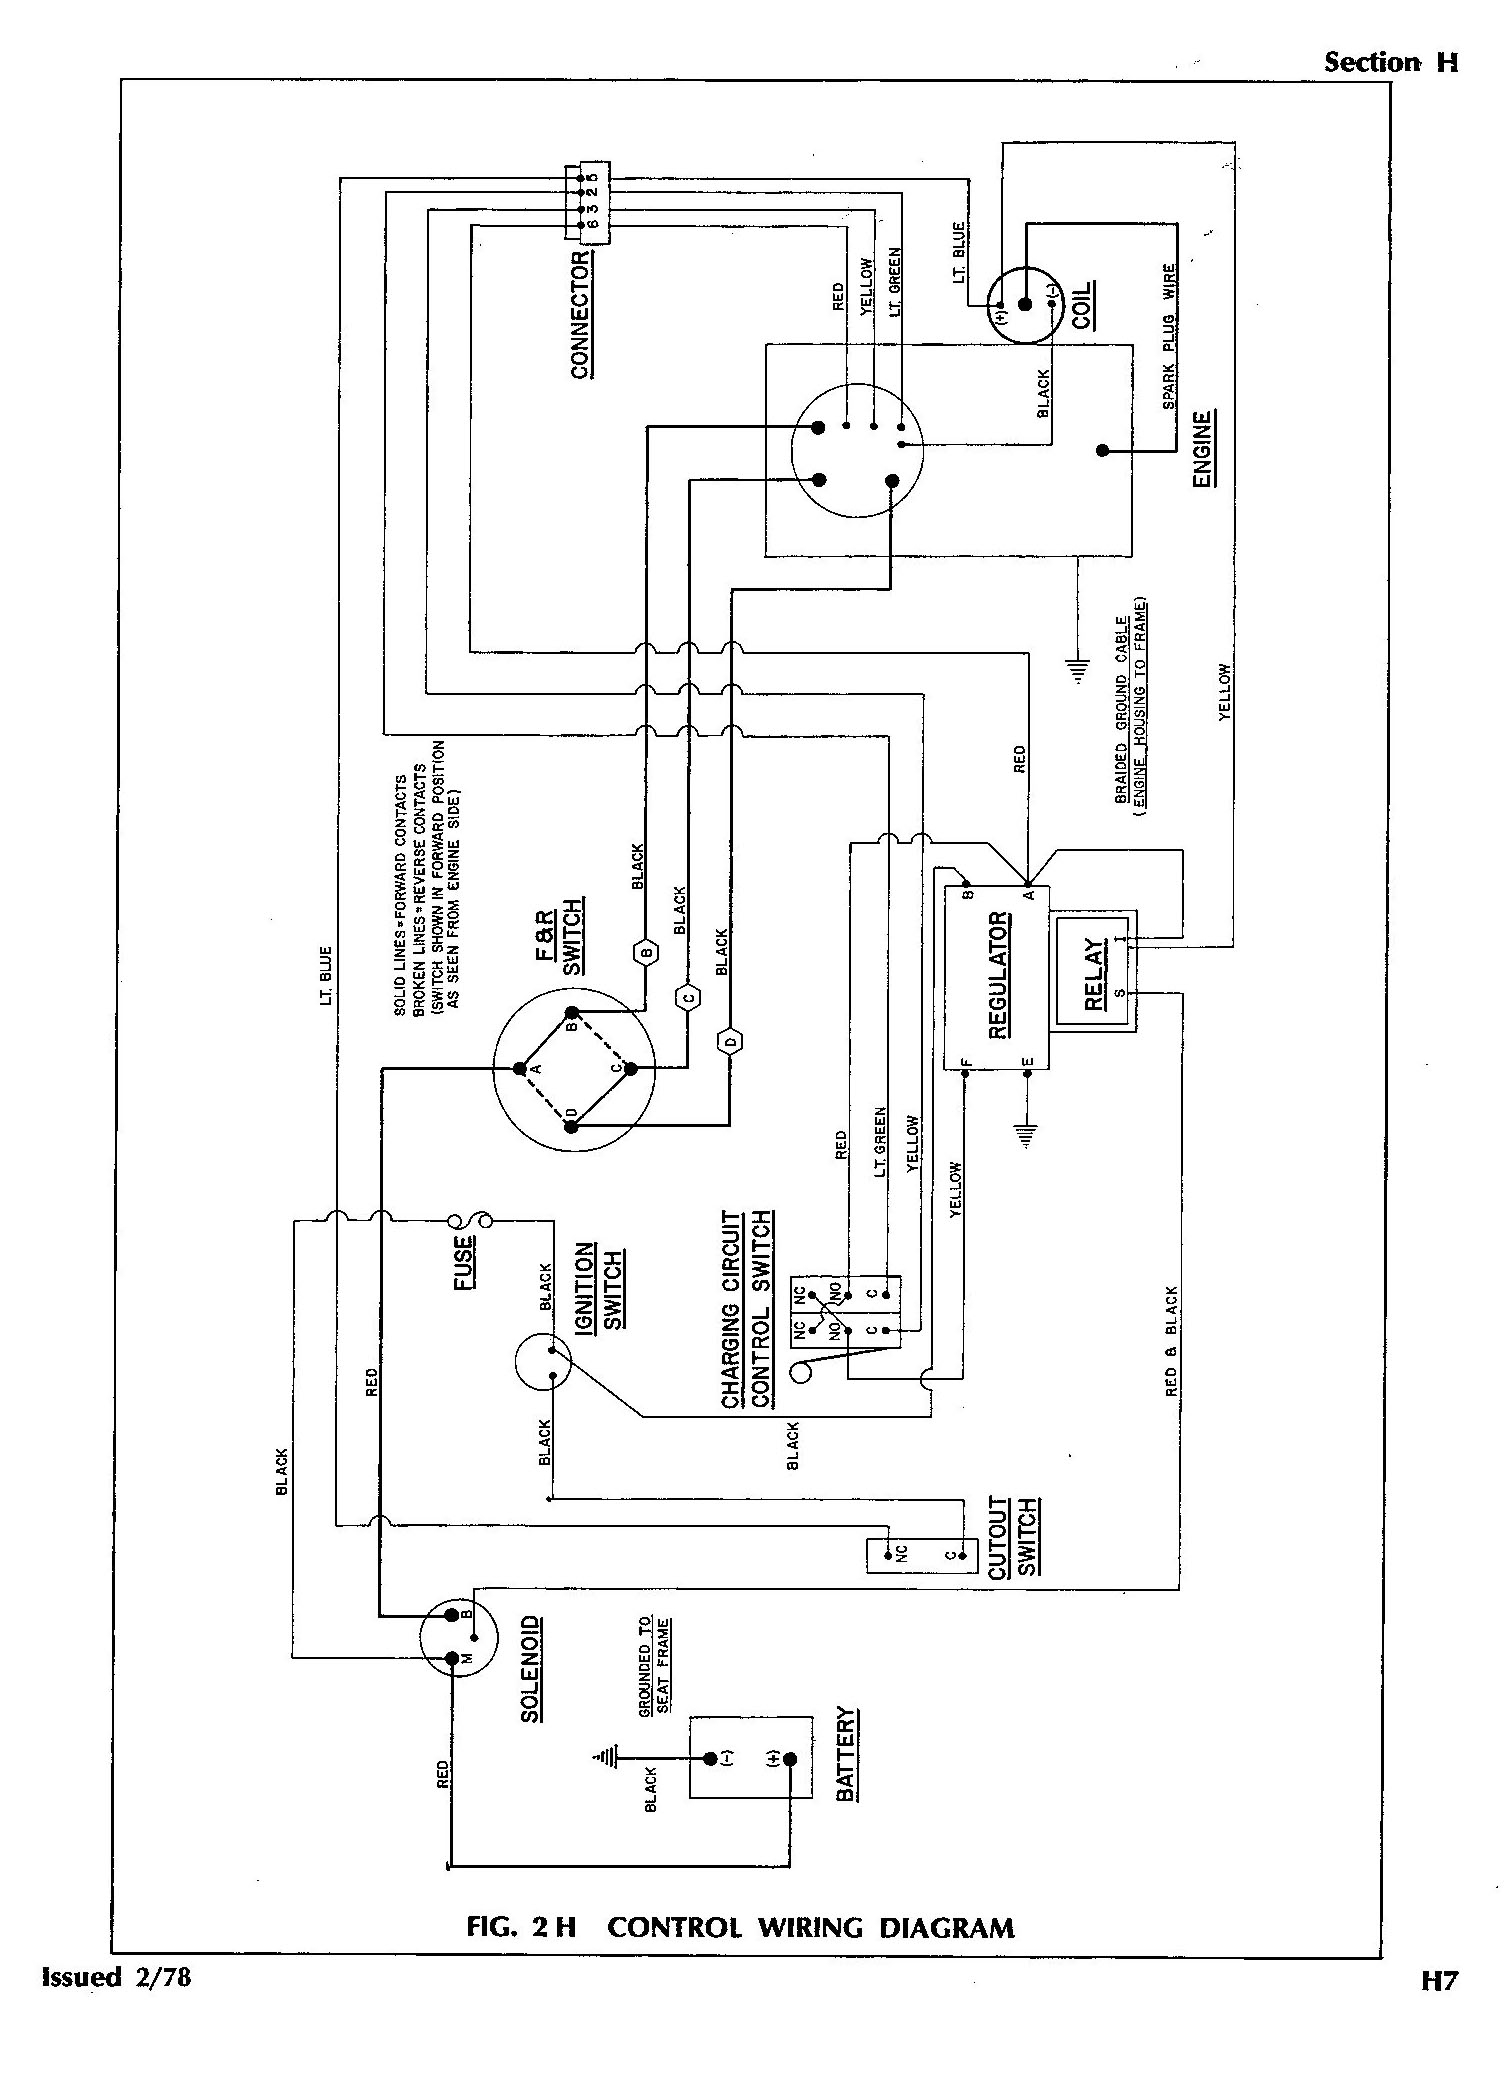 Ez Car Wiring Diagram - Data Wiring Diagram Today - Ez Go Wiring Diagram 36 Volt